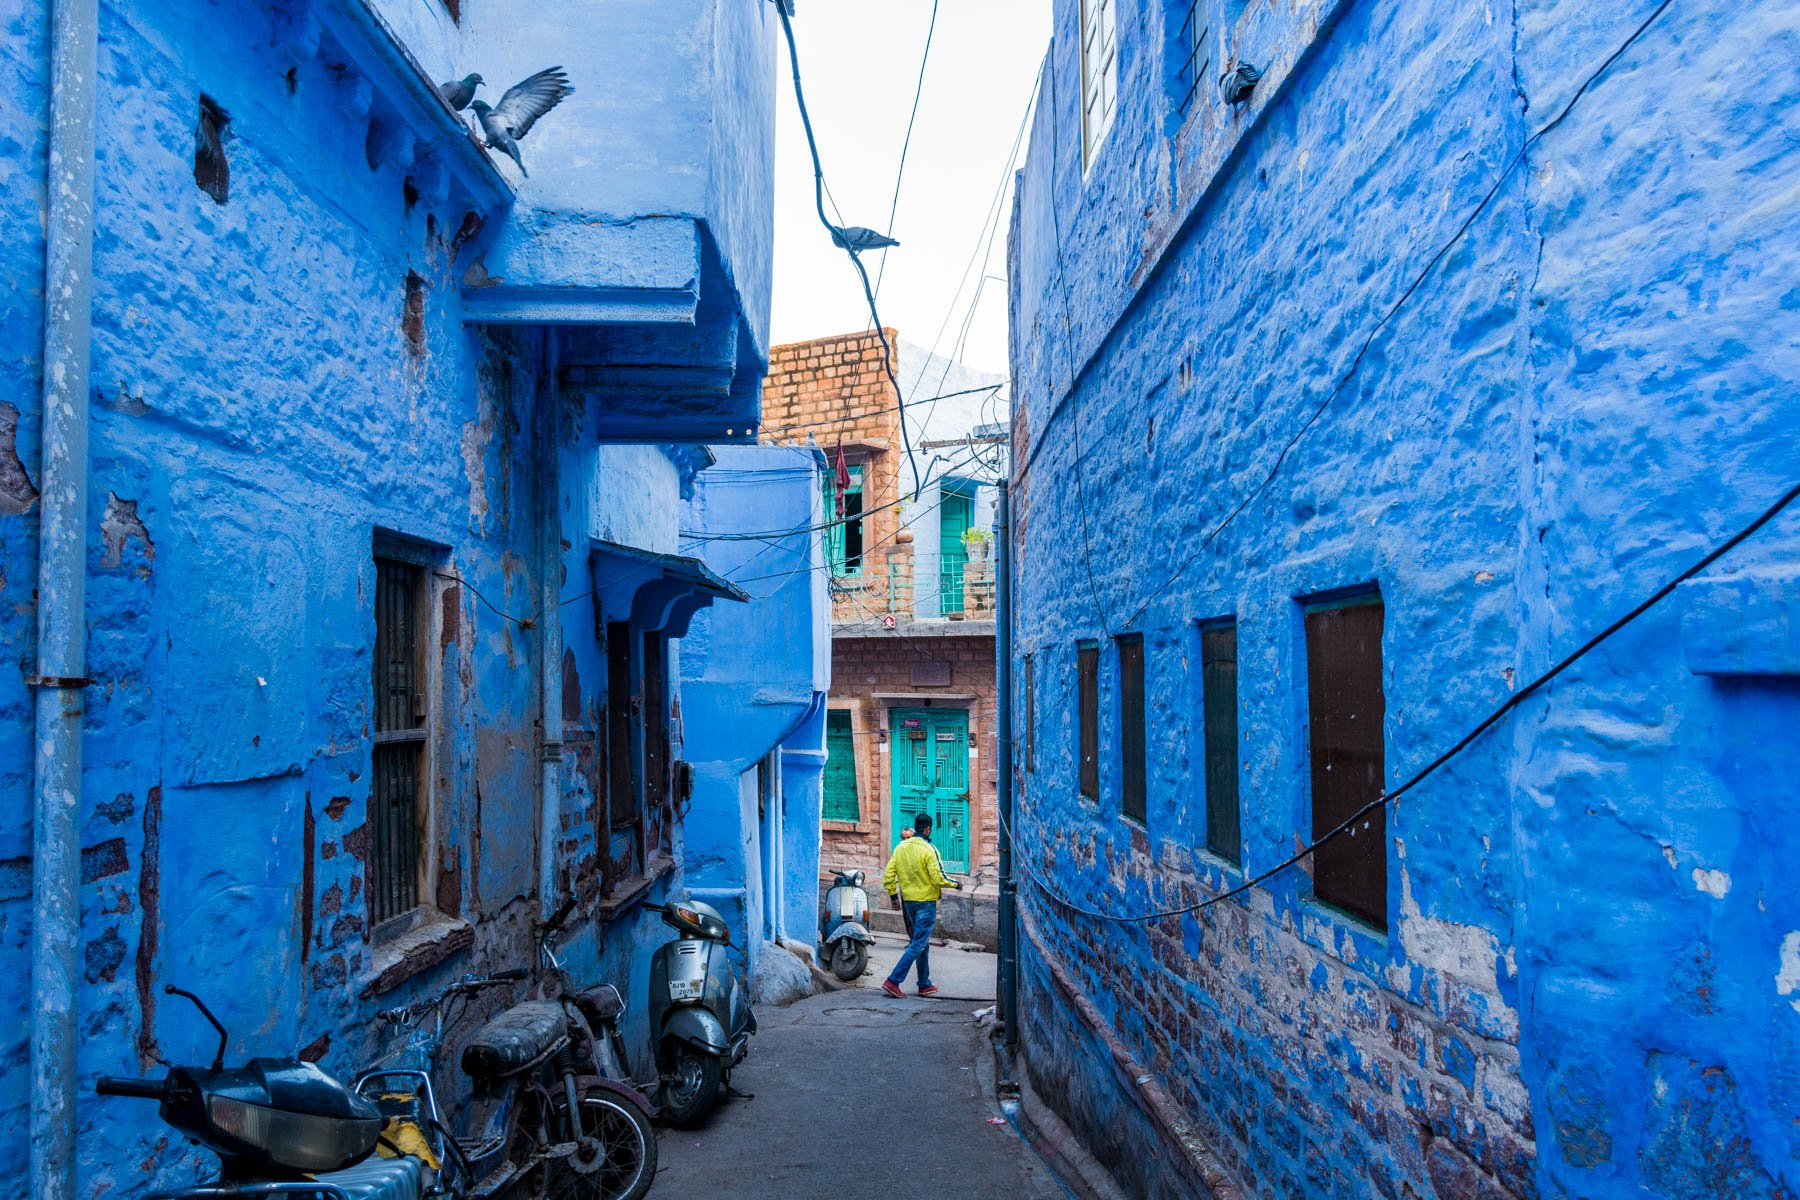 Photo essay about the streets and people of the Blue City of Jodhpur, Rajasthan, India - A man walking through a blue neighborhood in Jodhpur - Lost With Purpose